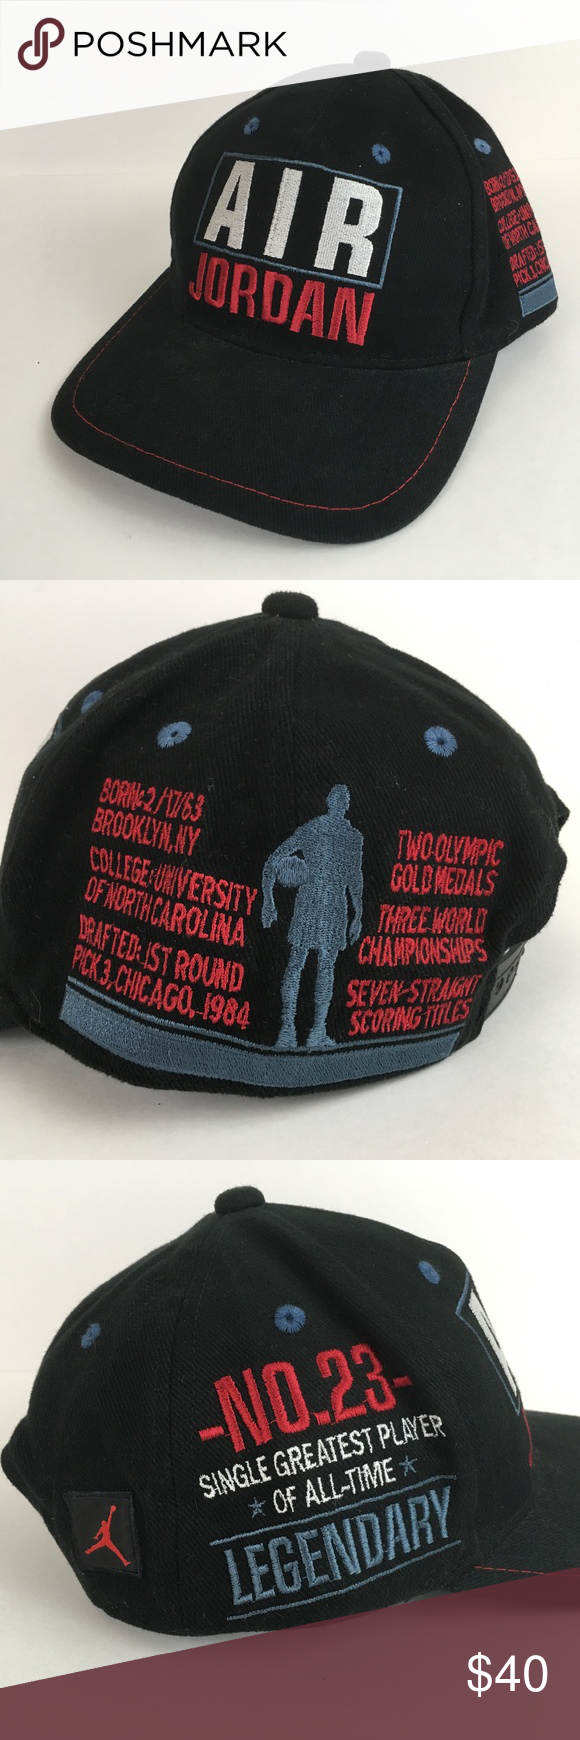 37ee8763 Nike Air Jordan GOAT Snapback Hat Good condition, no issues. Big AIR JORDAN  spellout on front, facts on left side, No.23, Legendary, Greatest of All  Time on ...